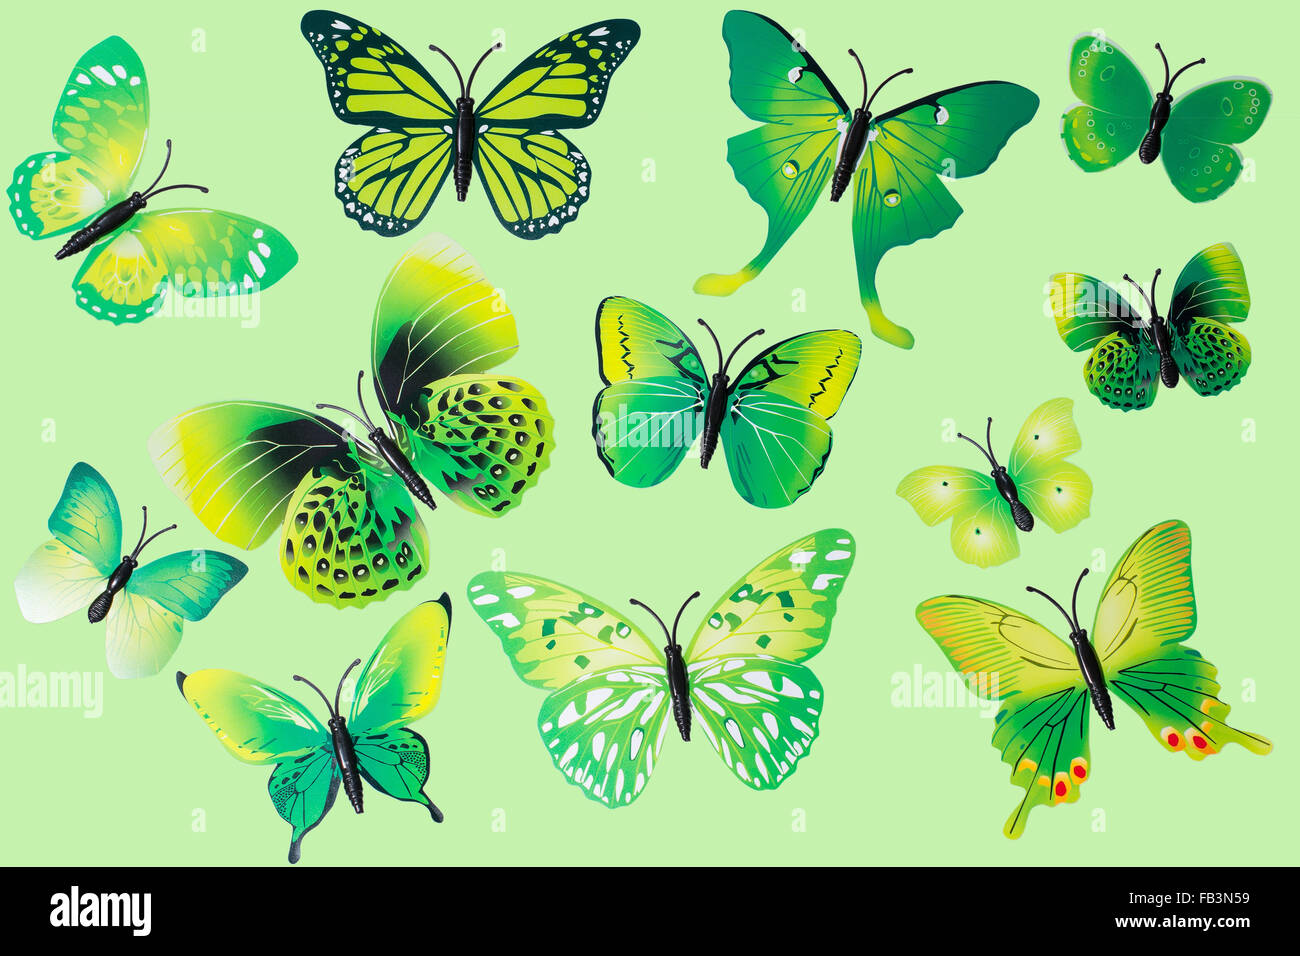 Collection of Green Fantasy Butterflies Clip Art - Stock Image